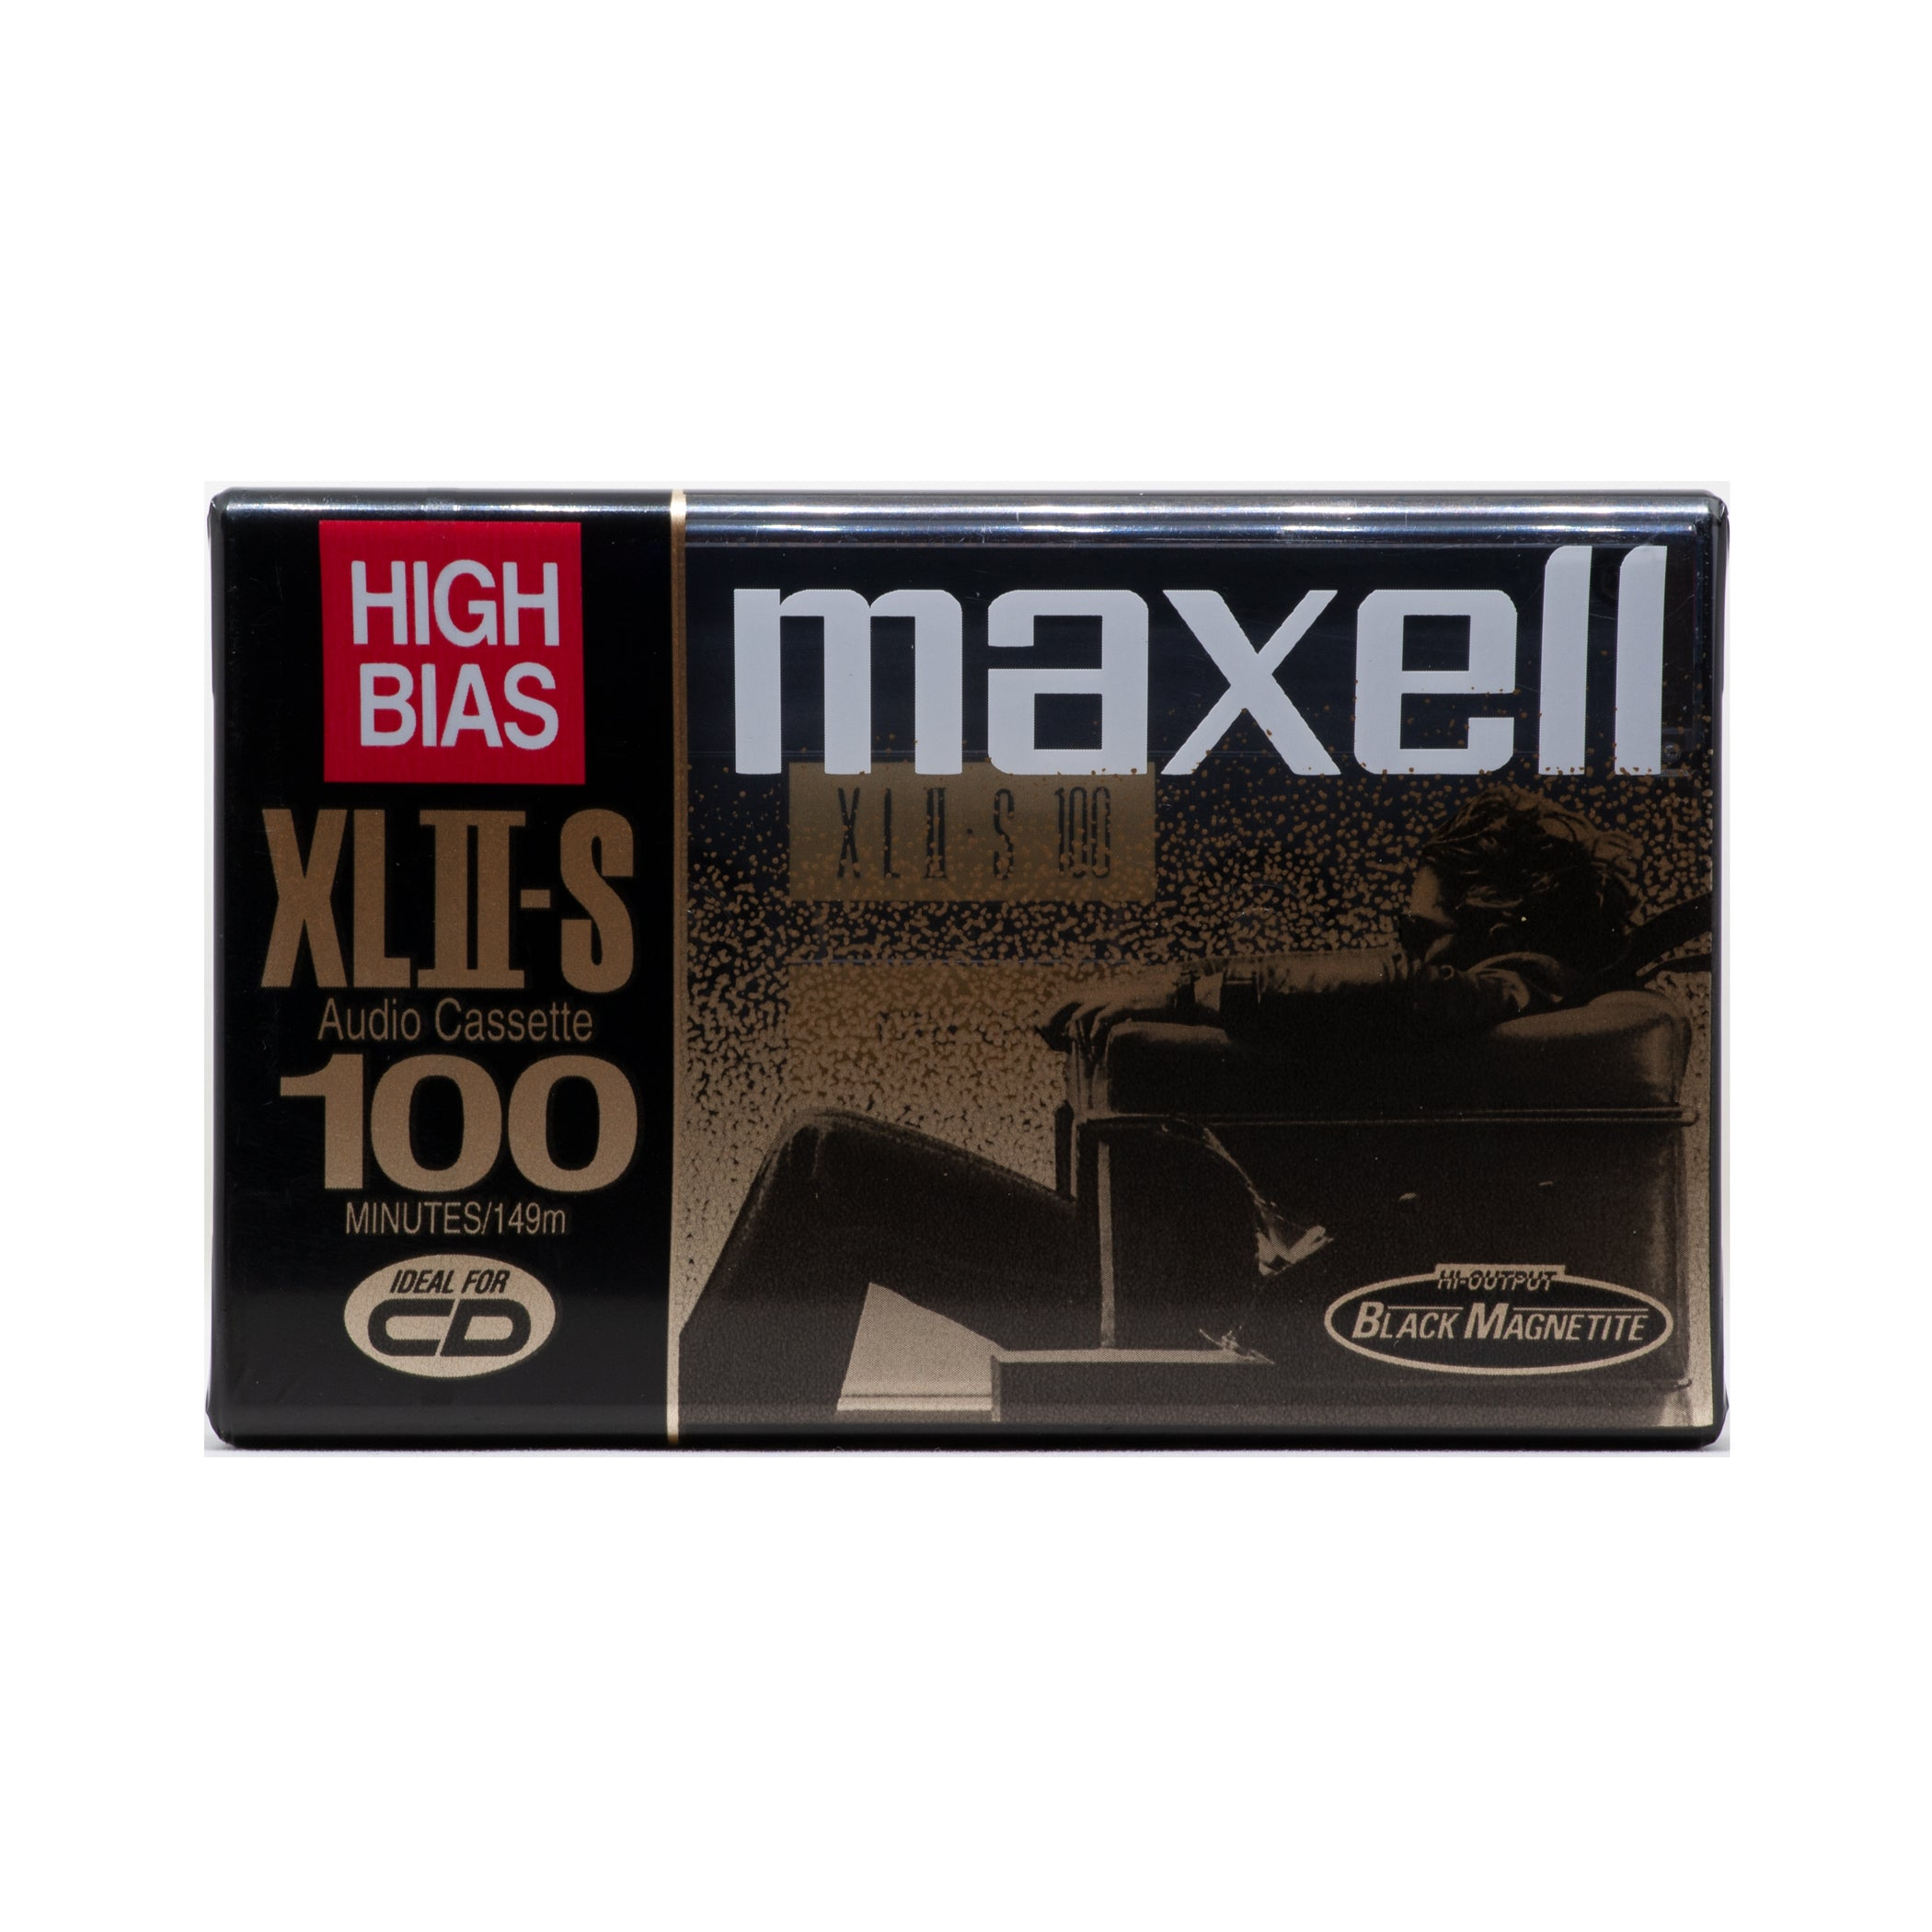 1998 Maxell XLII-S 100 Type II Chrome Studio Cassette Tape